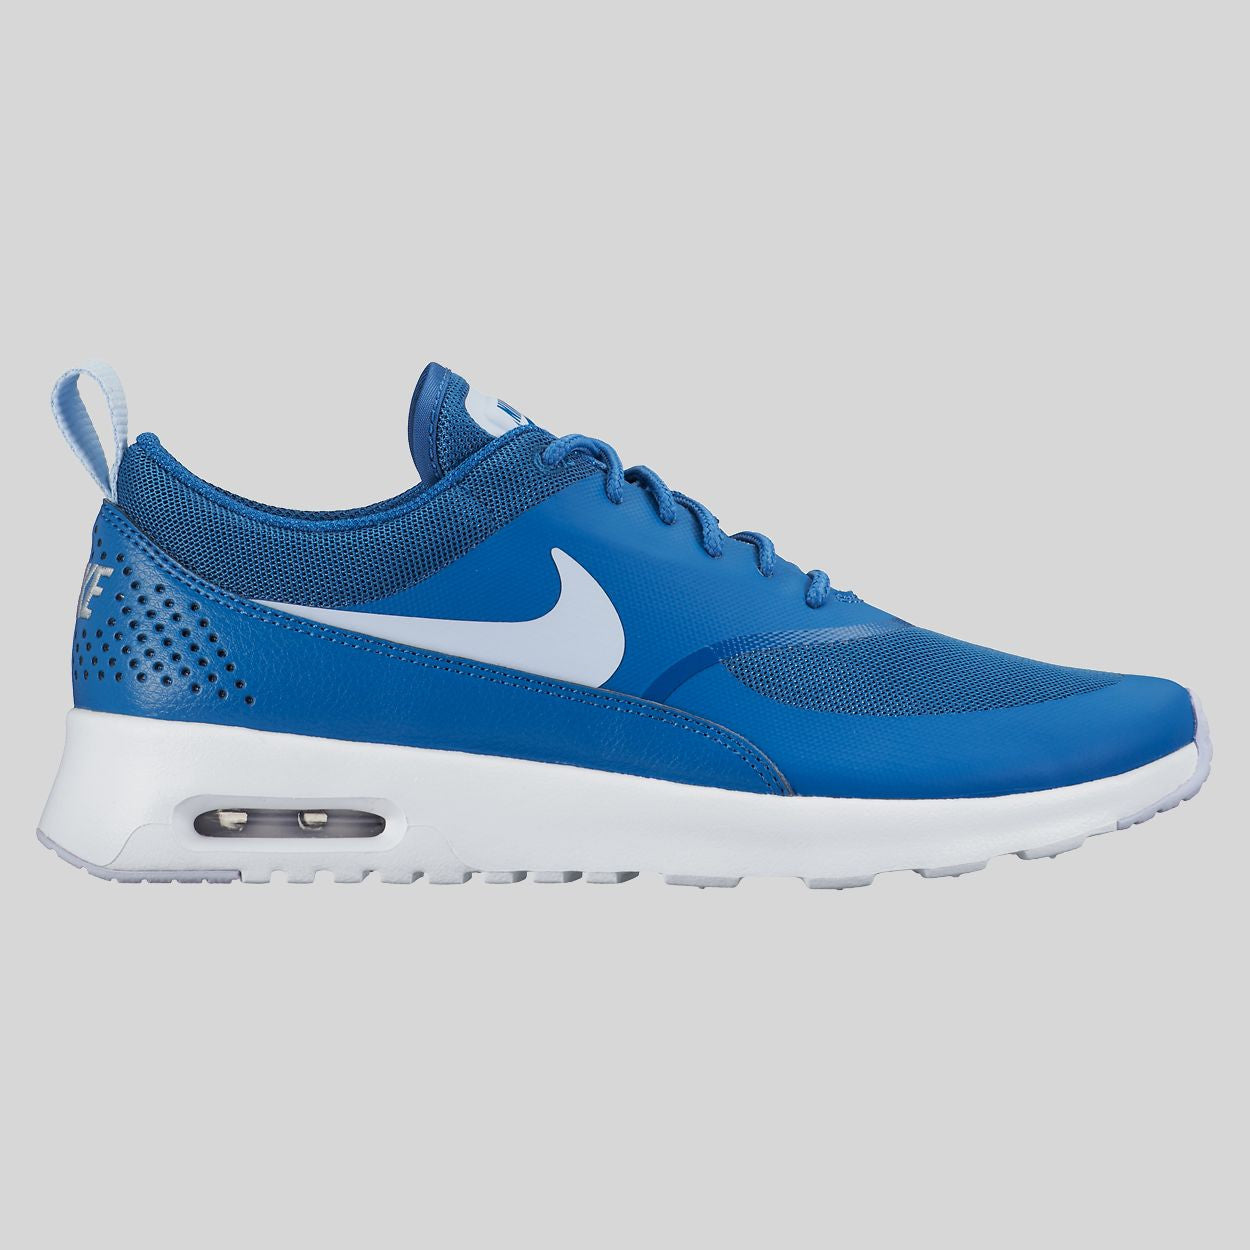 Fast Delivery Nike Air Max Thea 599409-410 Brigade Blue / White-Porpoise   Nike   Womens   2015